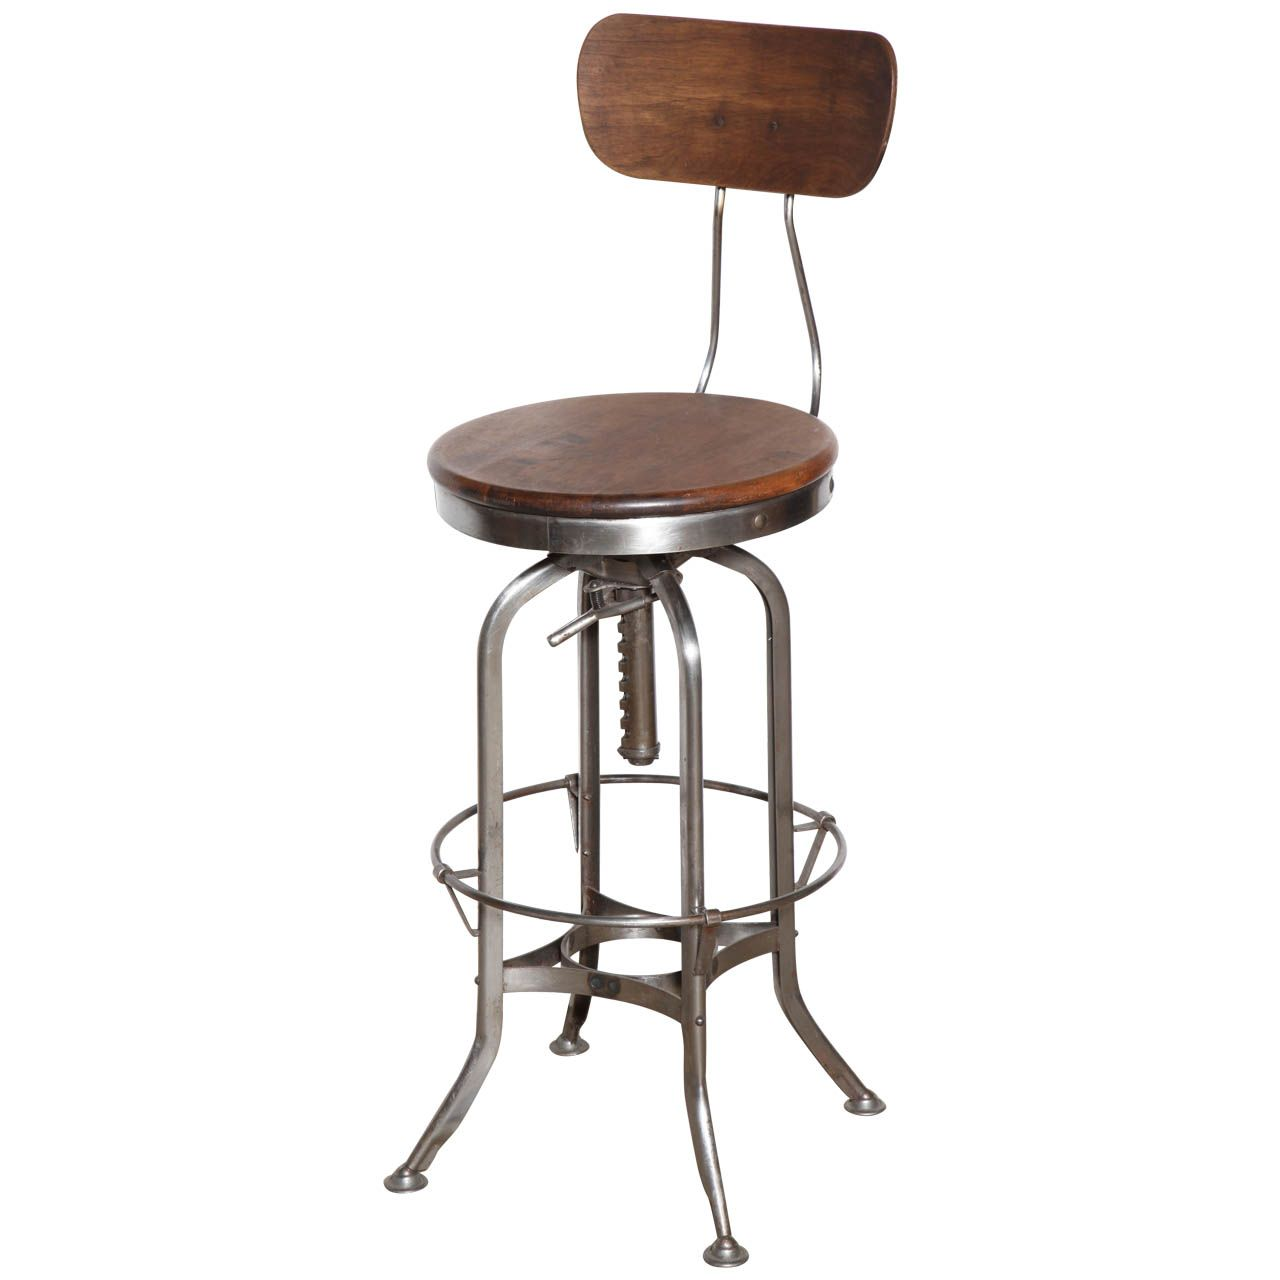 Tall Vintage Toledo Stool With Back Stools With Backs Stool Wooden Dining Room Chairs